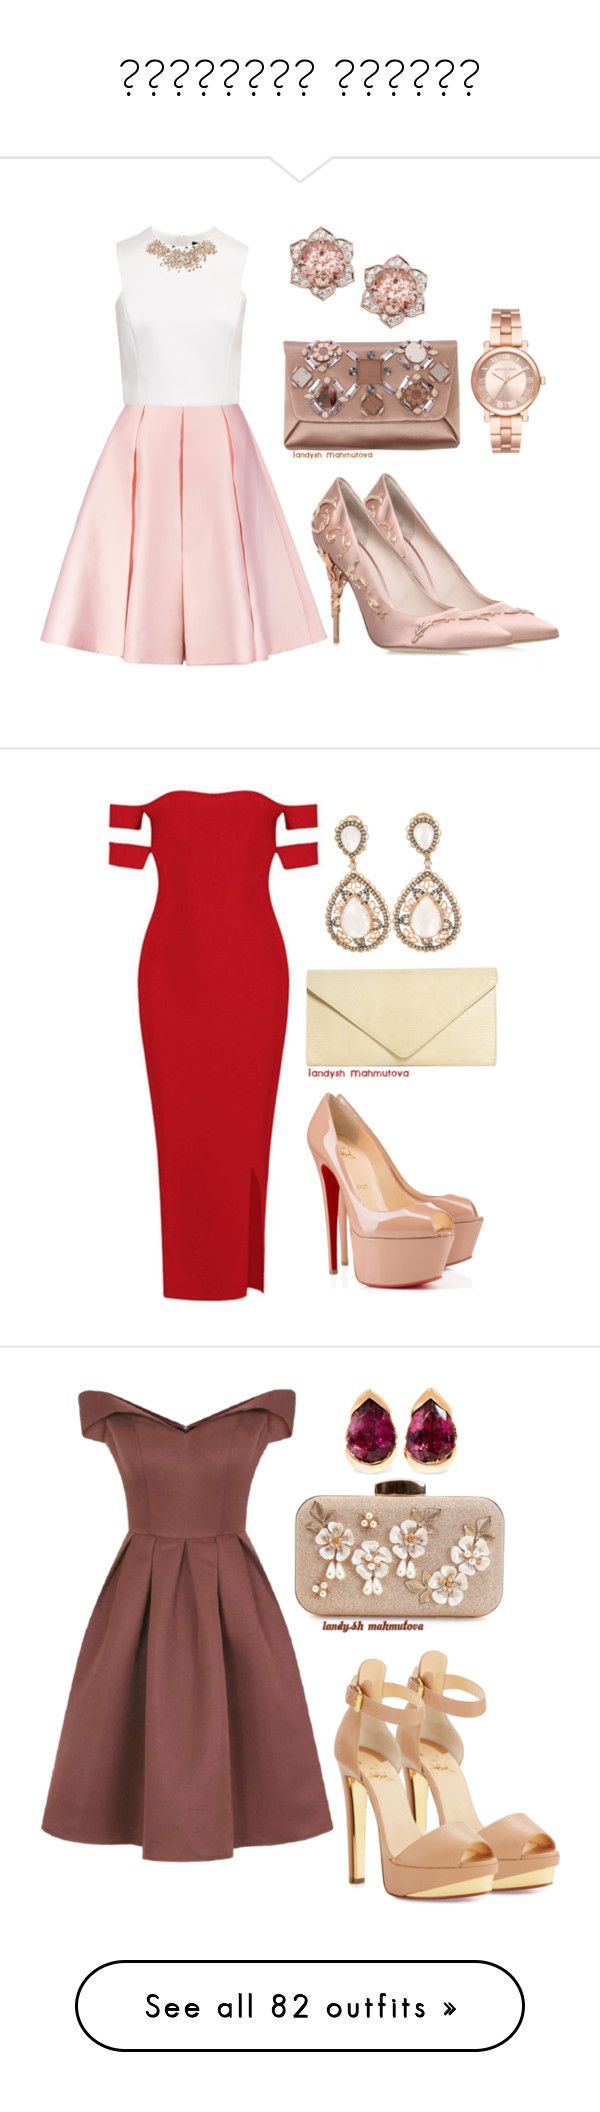 """Вечерние образы"" by landysh-1425 ❤ liked on Polyvore featuring Emilia Wickstead, Ted Baker, RALPH & RUSSO, Lanvin, Michael Kors, Christian Louboutin, Brooks Brothers, Chi Chi, Fernando Jorge and WearAll"